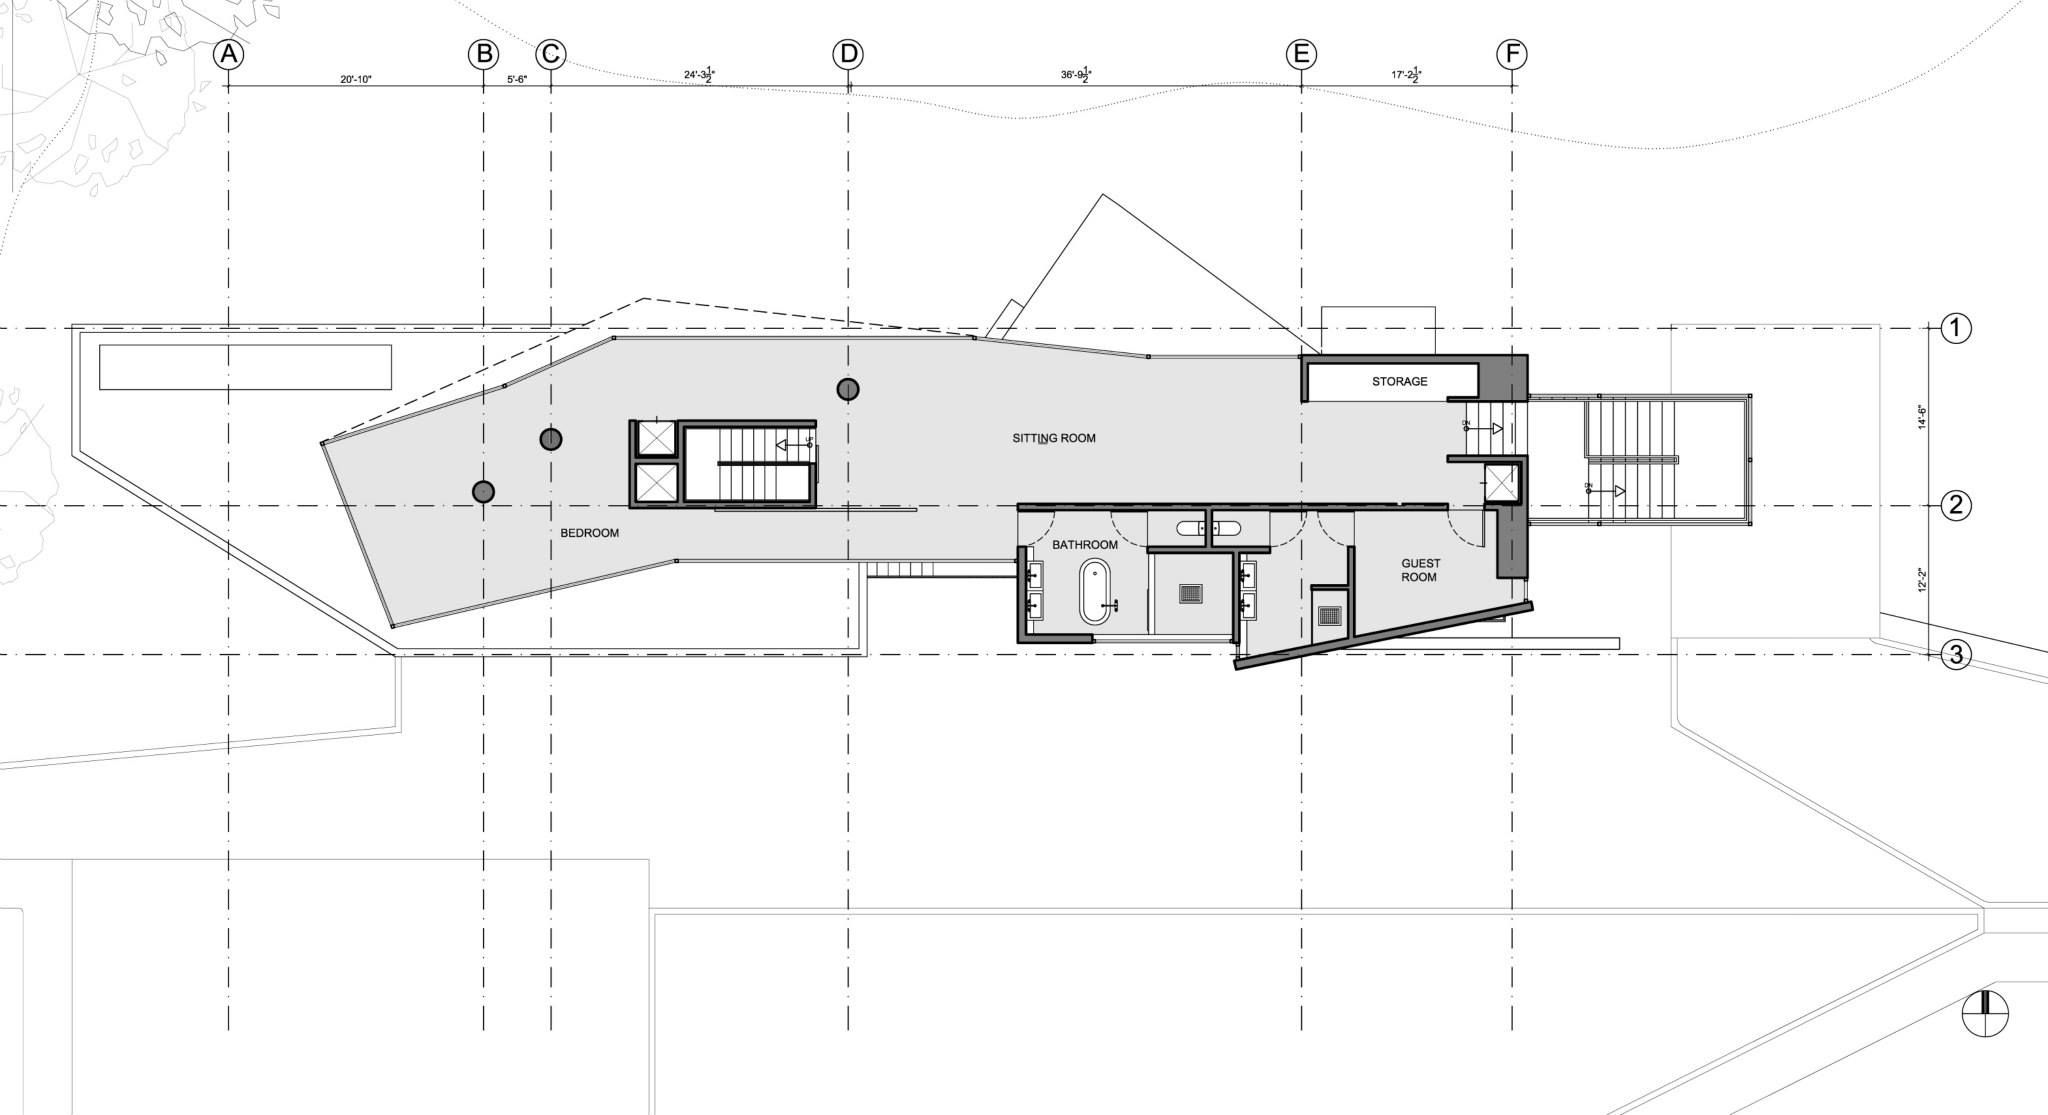 Aviators Villa An Atypical Project Designed By Urban Office - Aviators villa urban office architecture